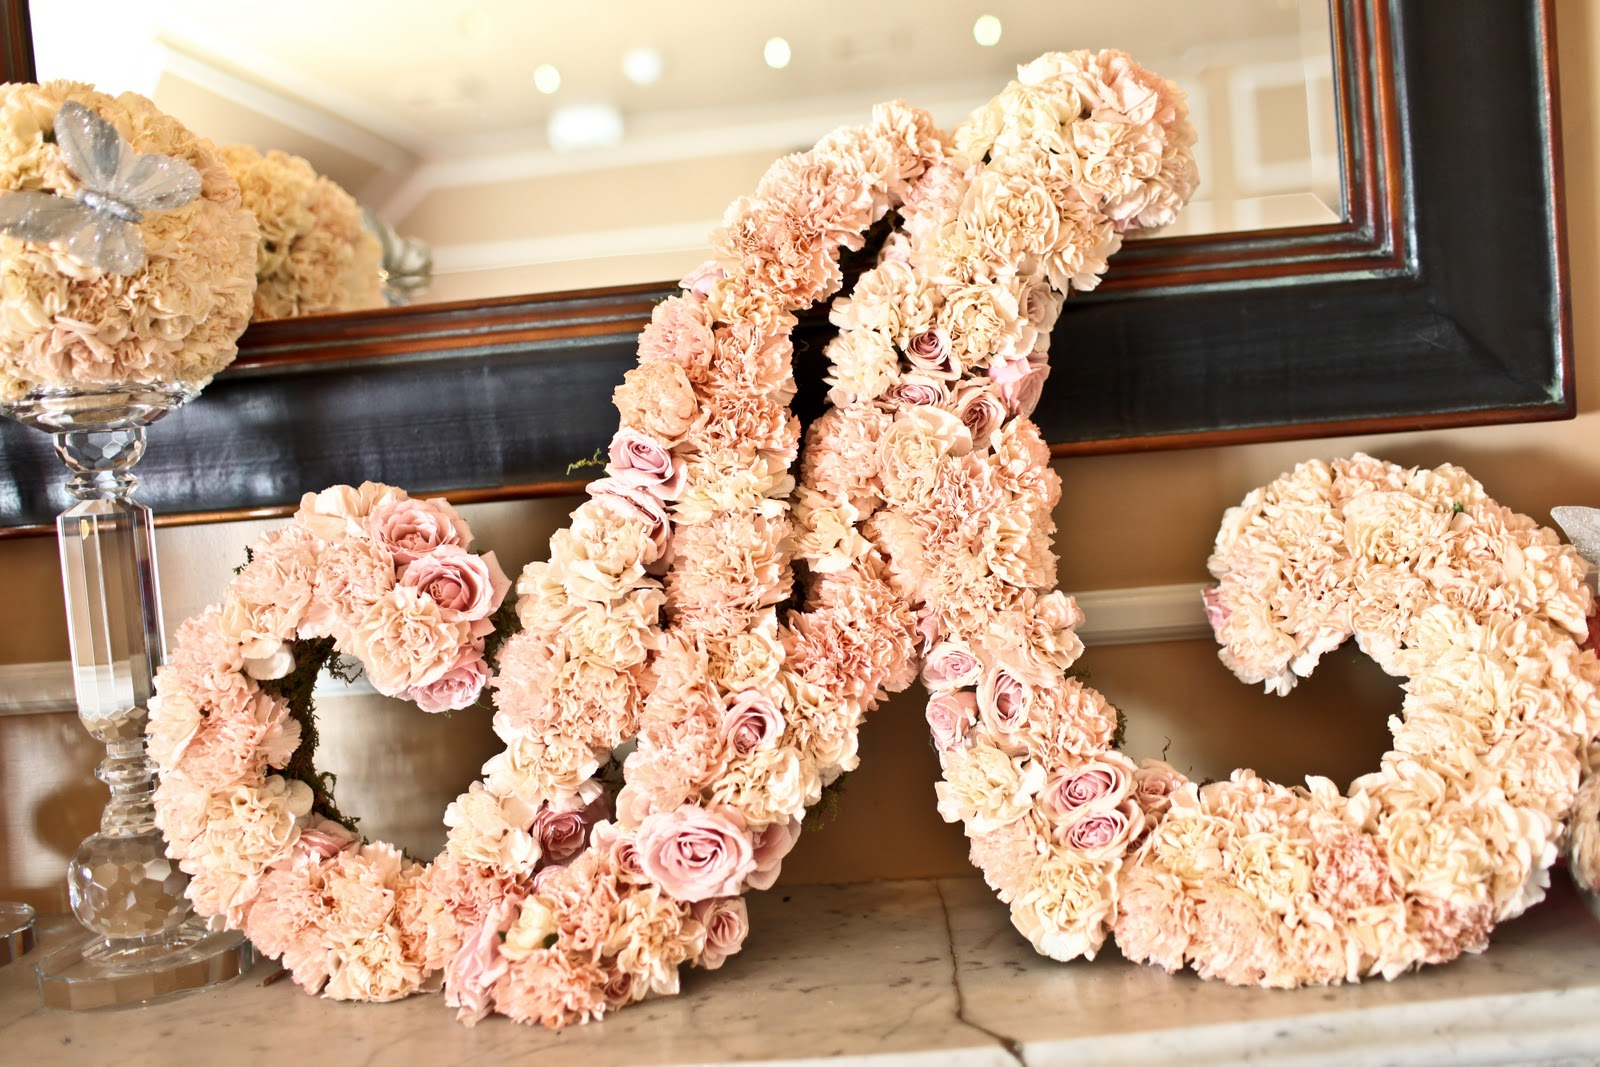 Chandelier events blog inspiration for weddings events parties chandelier event everything roses 1st birthday party aloadofball Choice Image